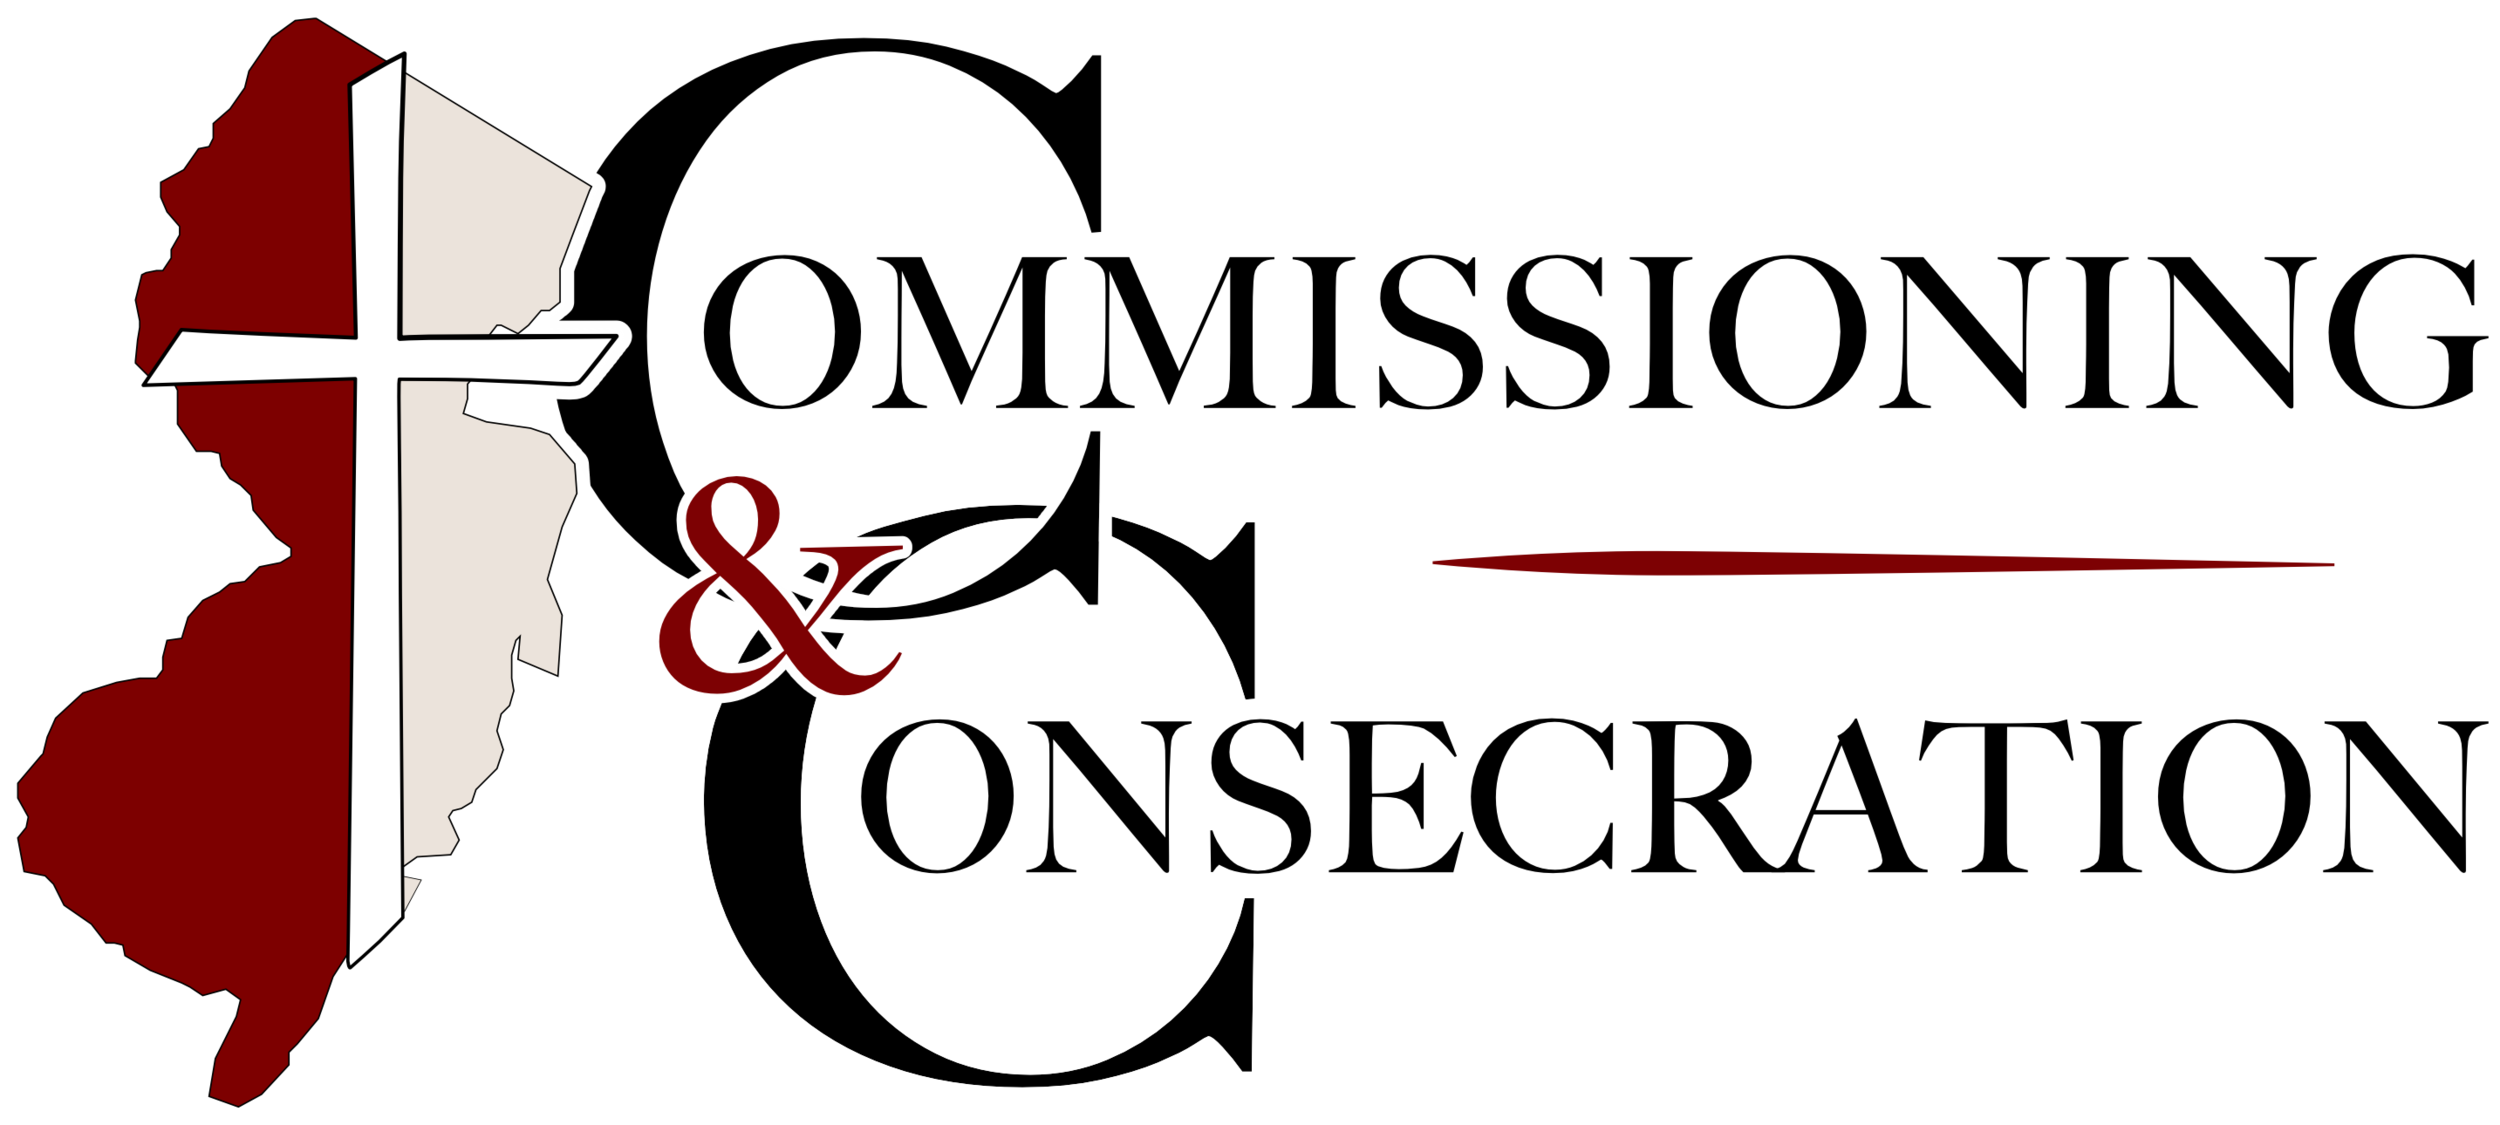 Commissioning & Consecration